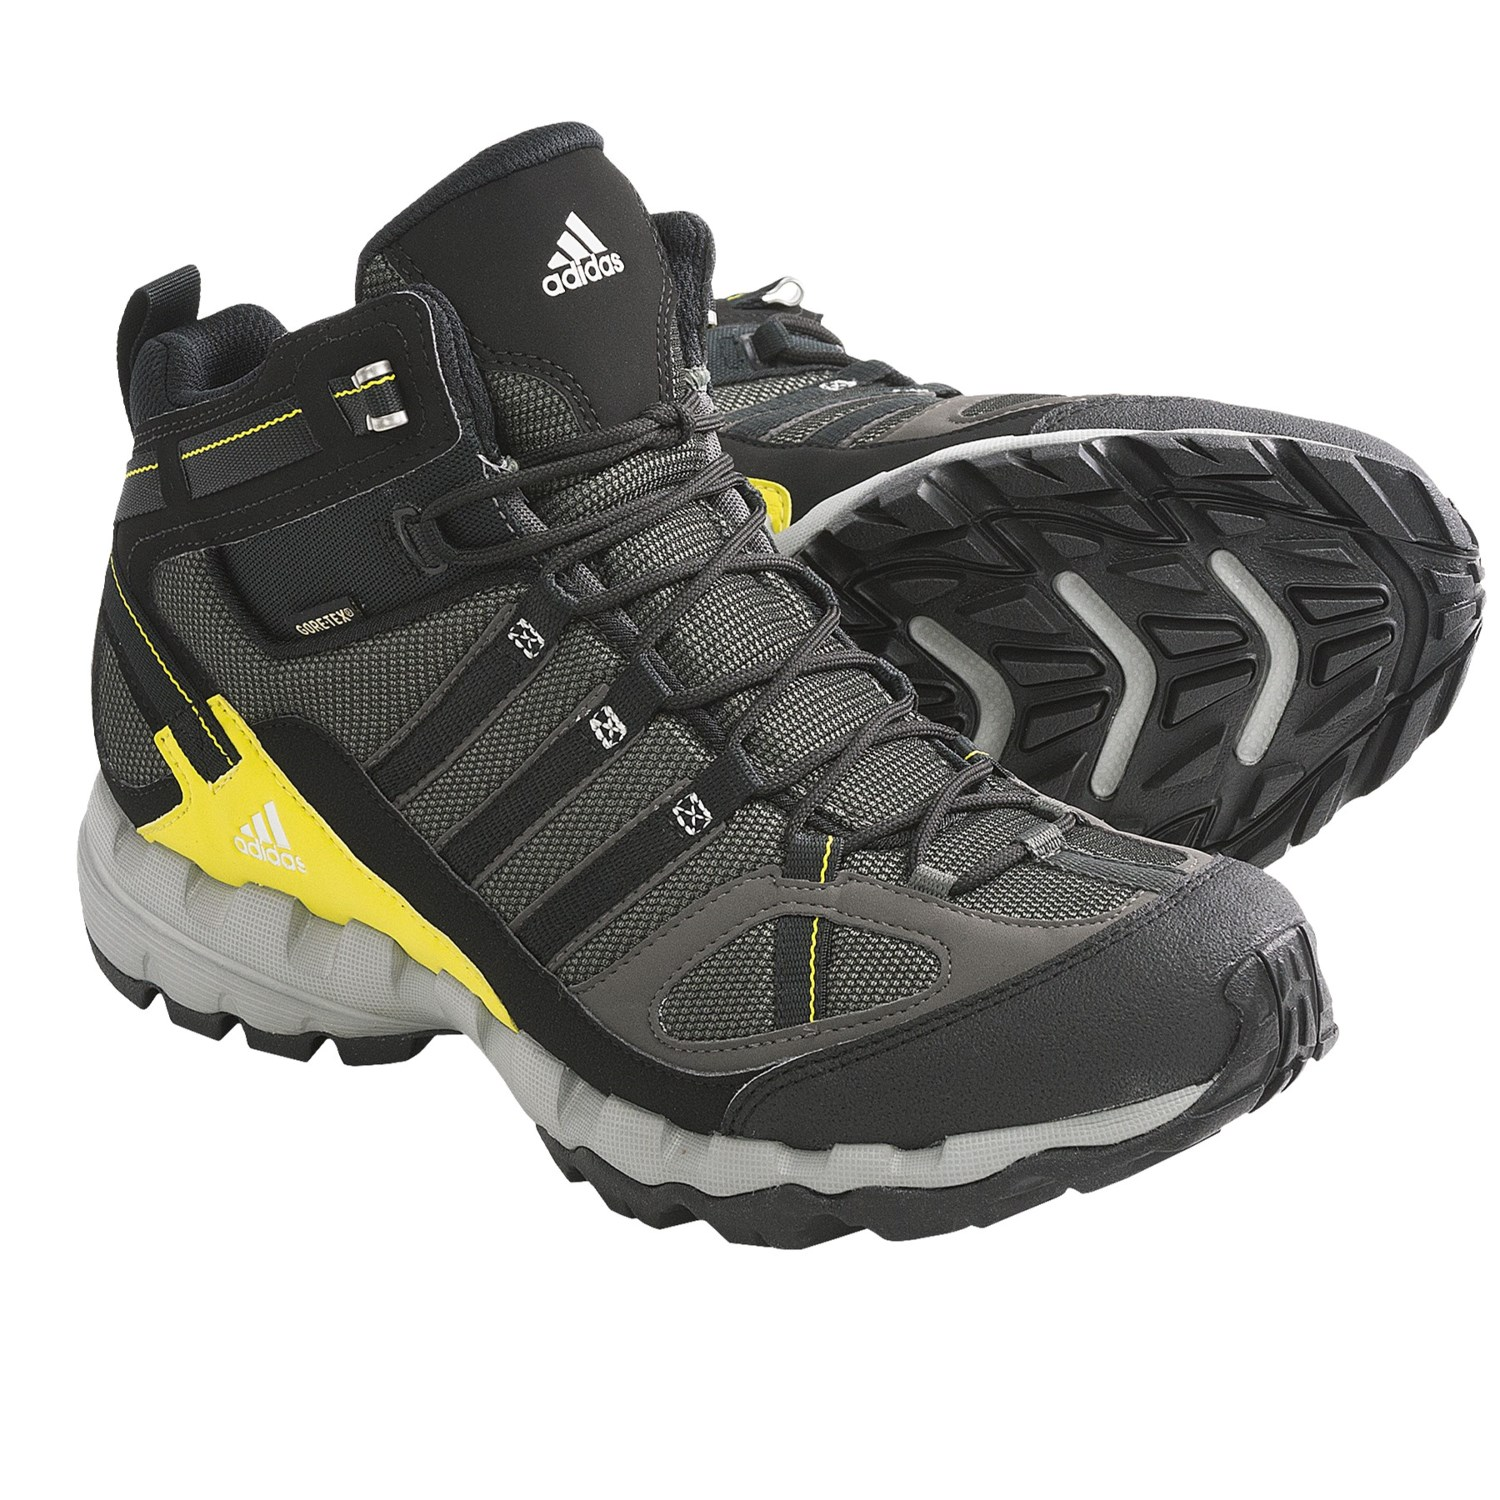 Alfa Img Showing gt Lightweight Hiking Sandals For Outdoor